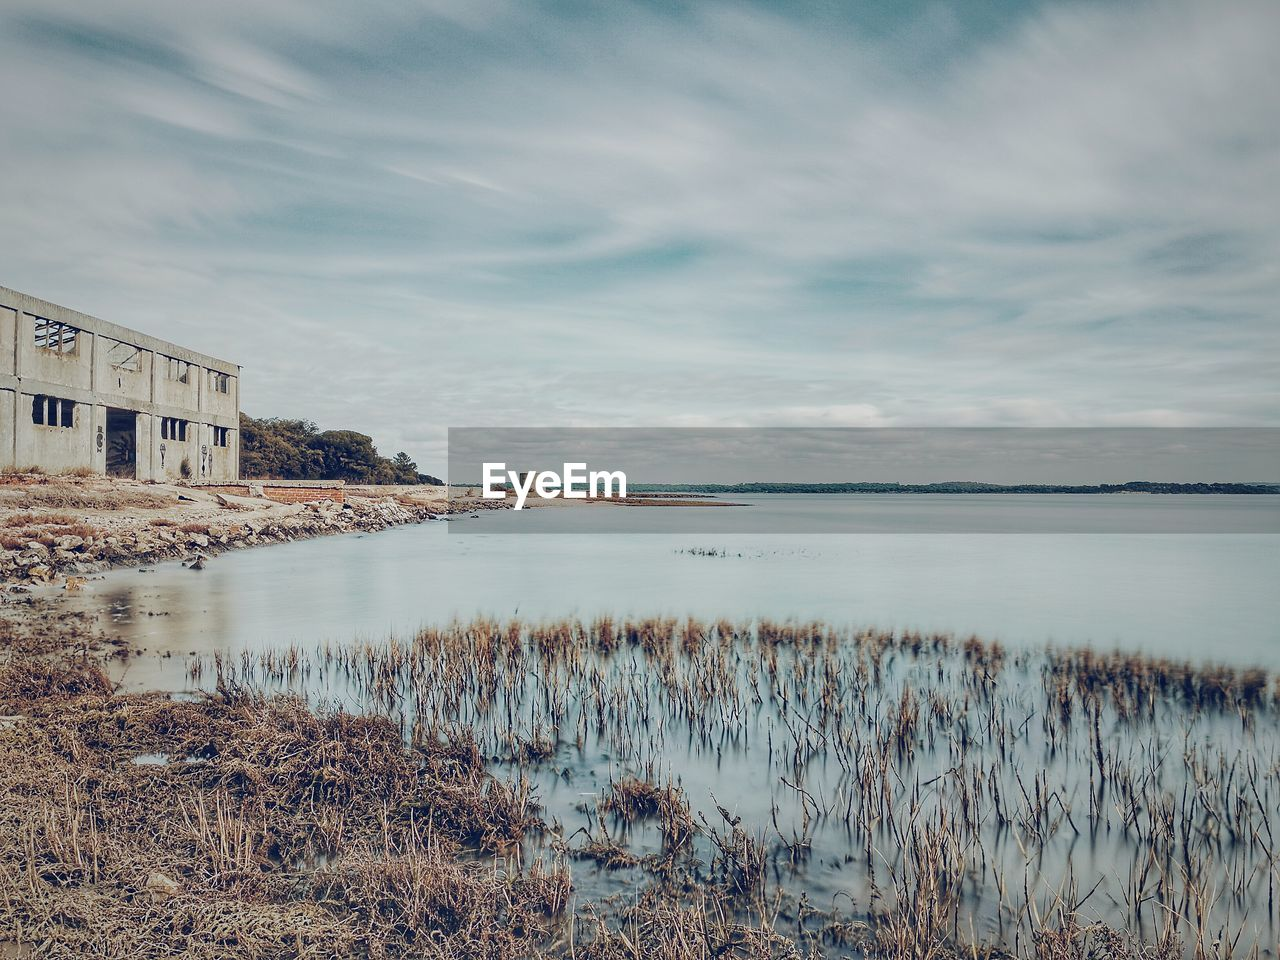 water, sky, nature, cloud - sky, architecture, no people, built structure, beauty in nature, scenics, outdoors, tranquility, lake, day, building exterior, grass